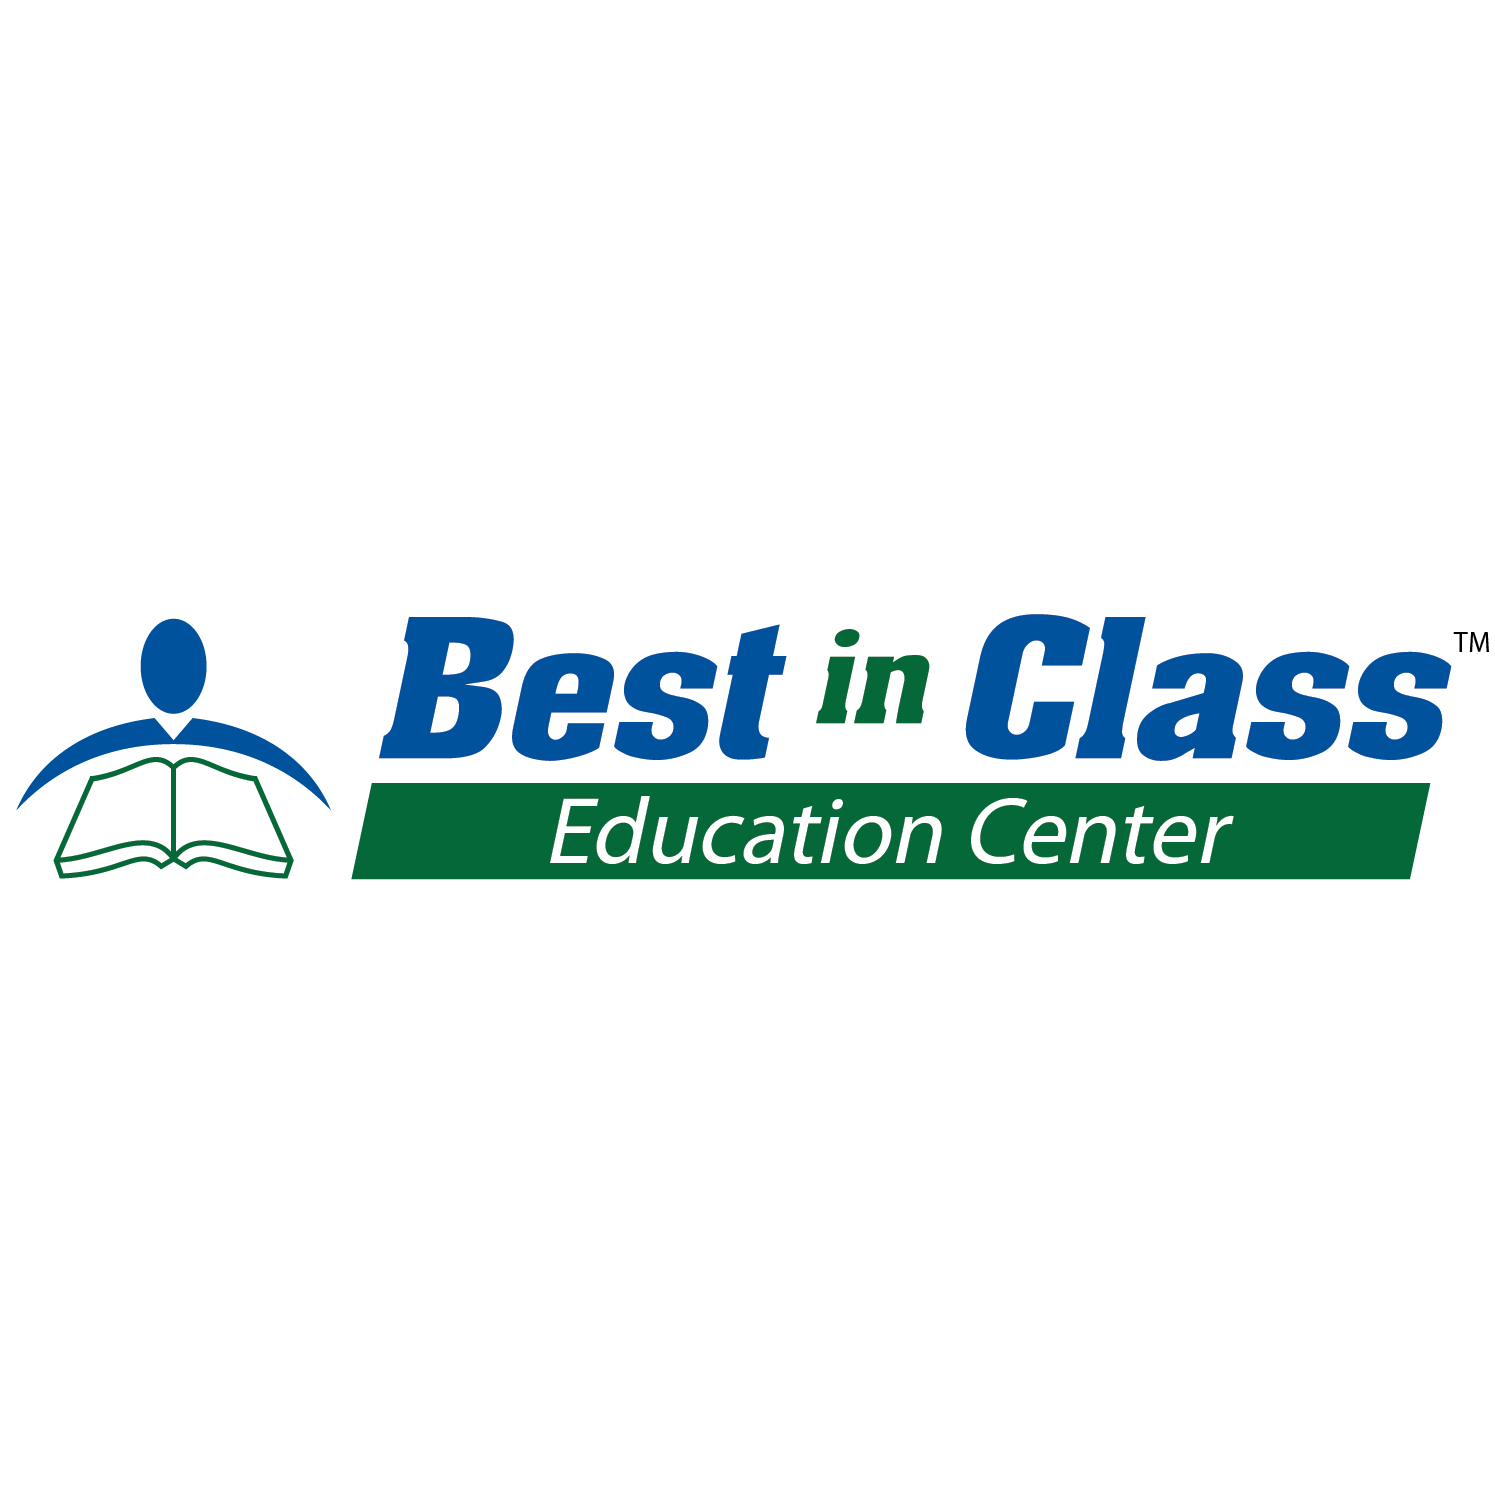 Best in Class Education - Bellevue - Bellevue, WA 98005 - (425)453-9532 | ShowMeLocal.com